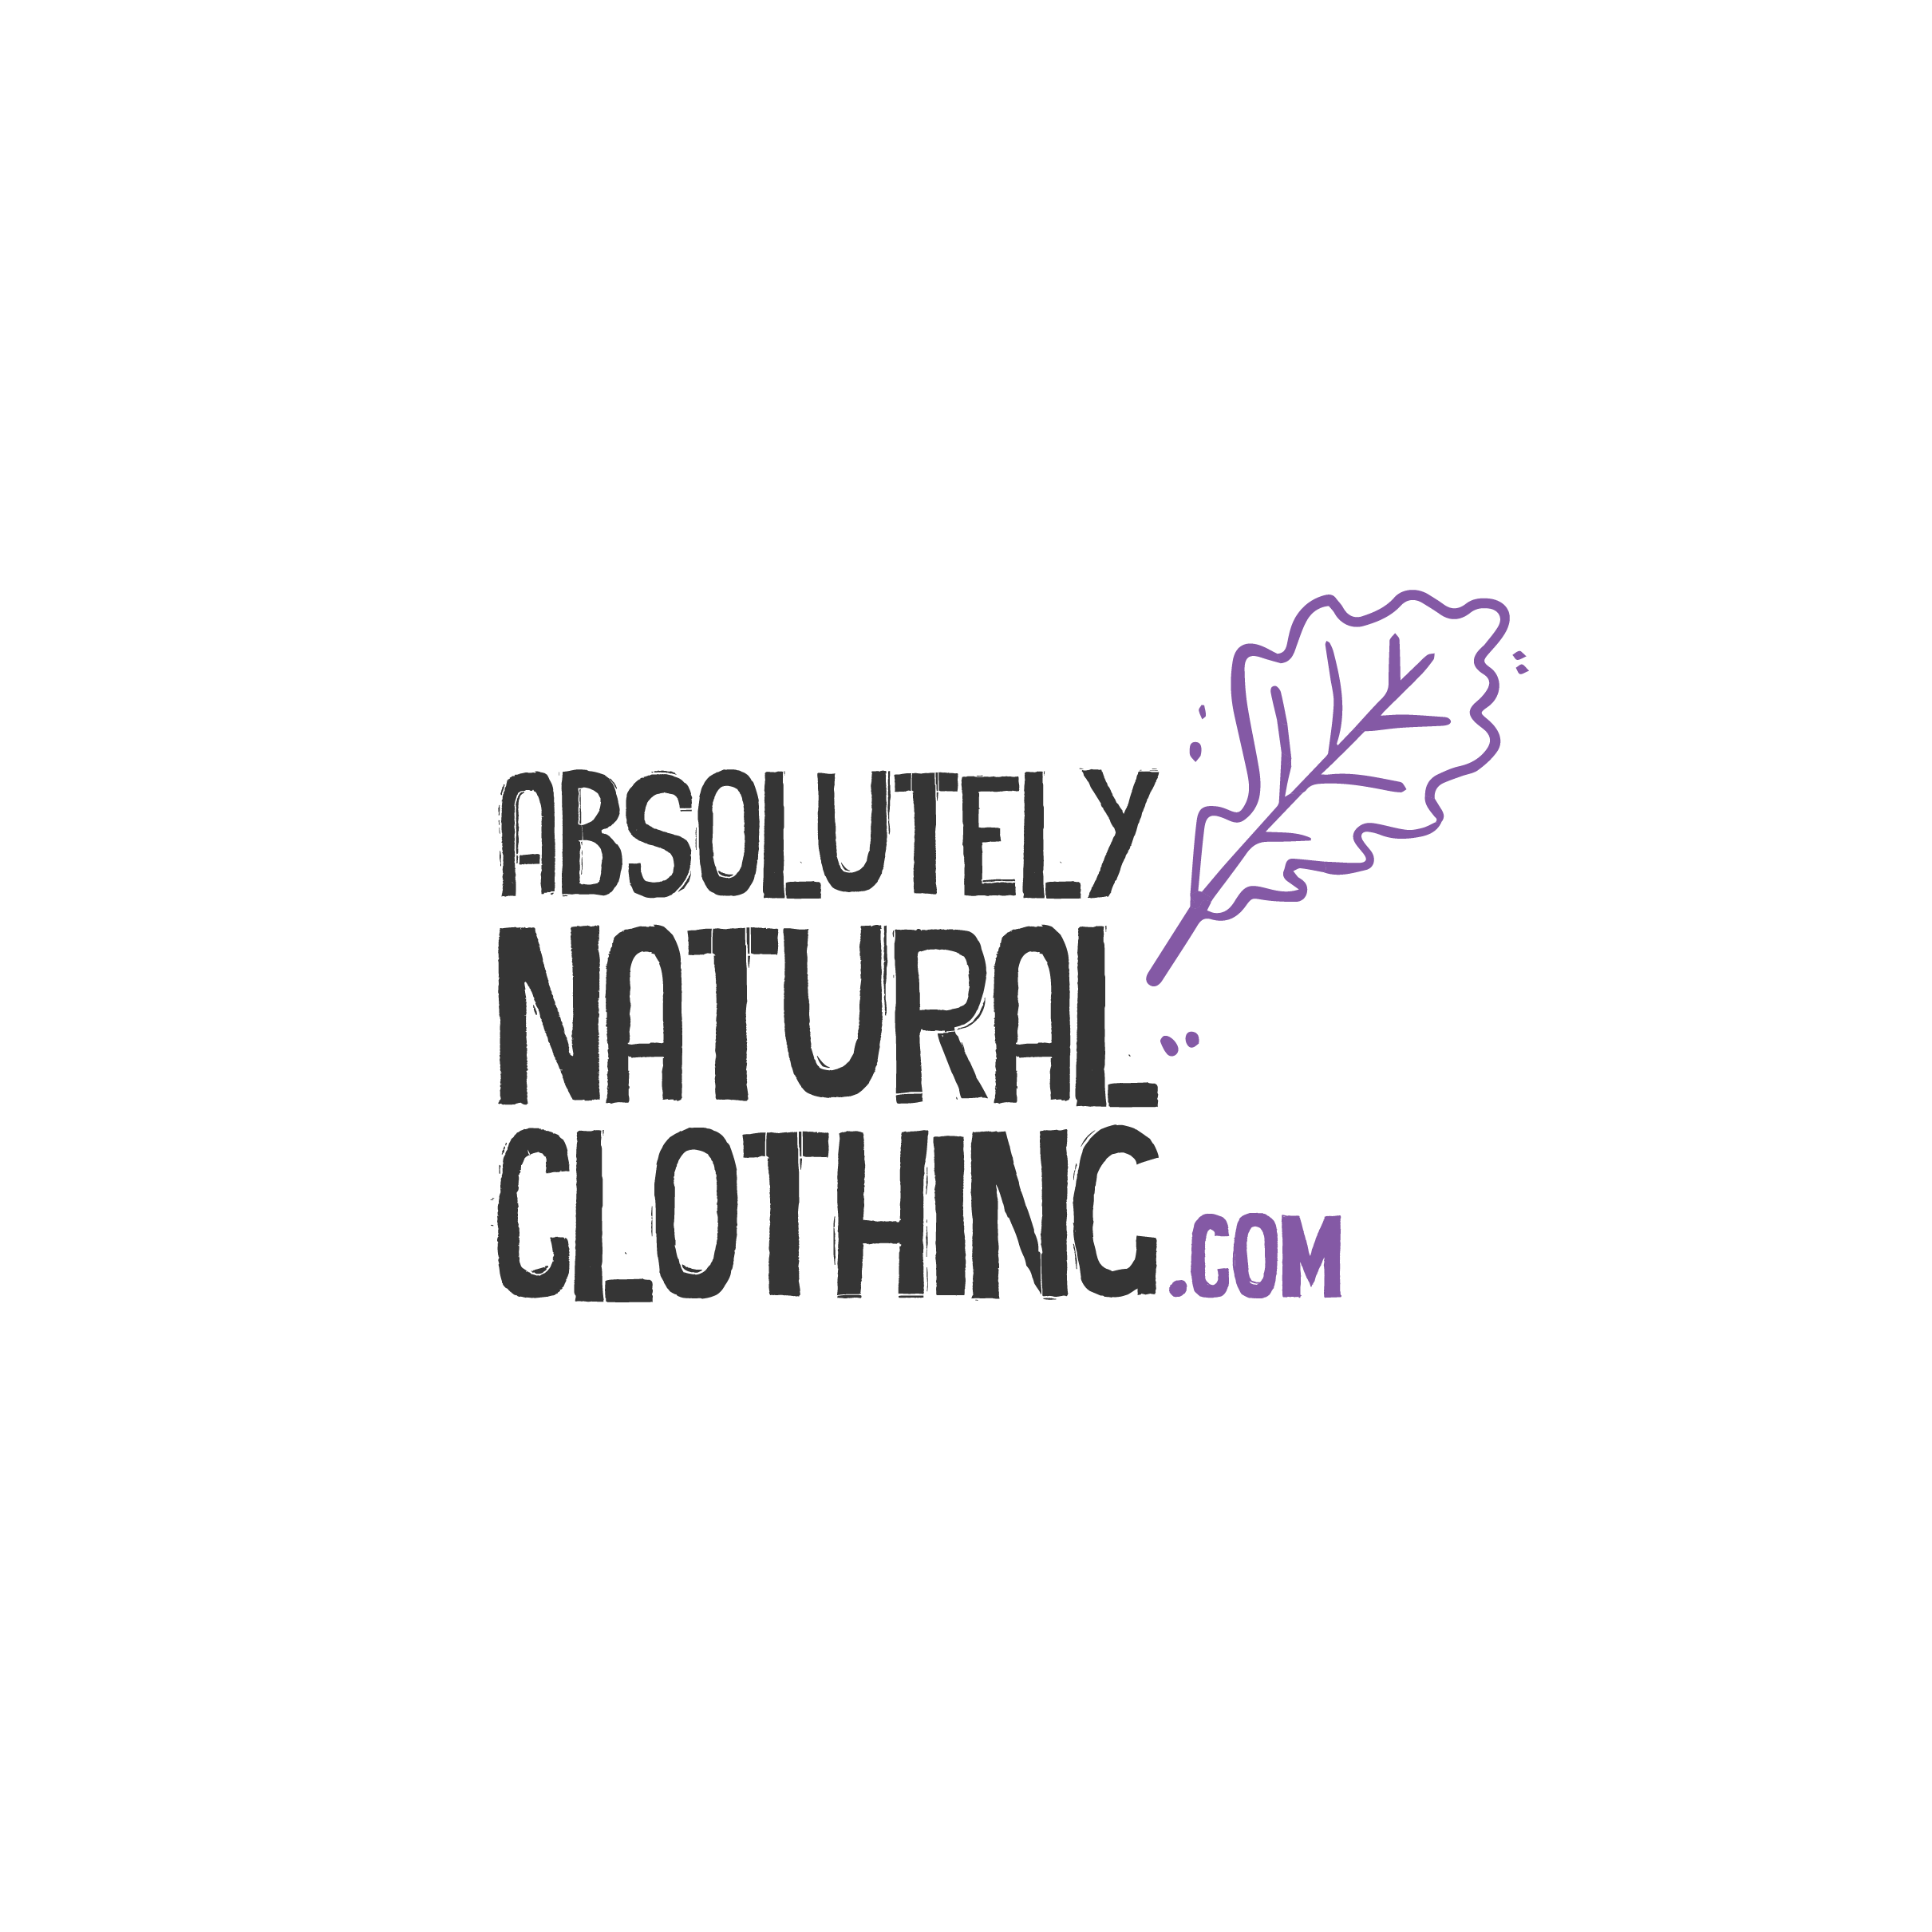 Absolutely Natural Clothing Logo Design-03.png